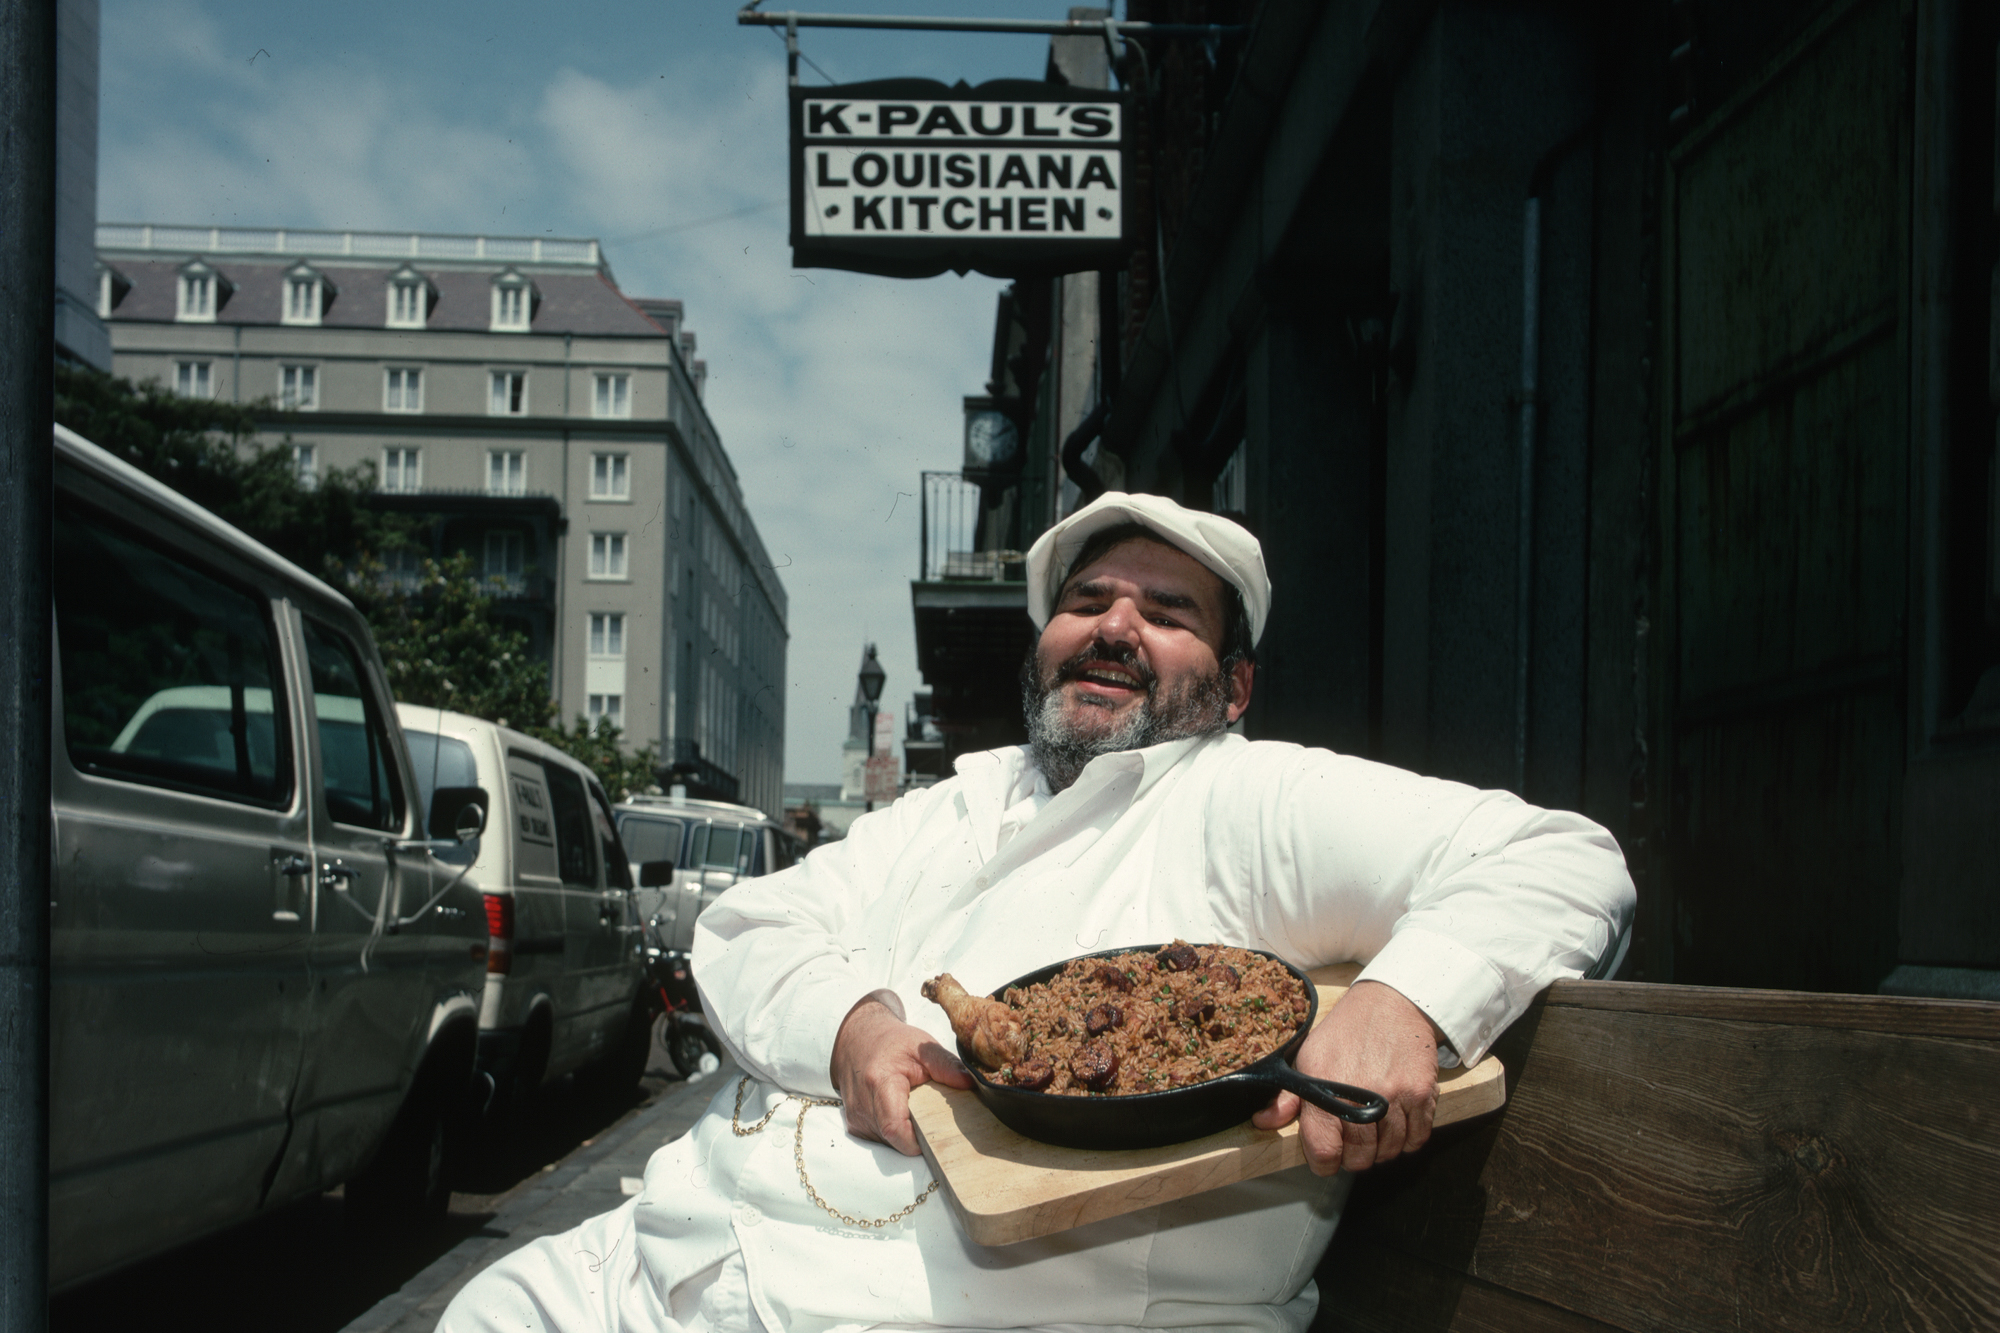 Chef Paul Prudhomme's K-Paul's in New Orleans Closes